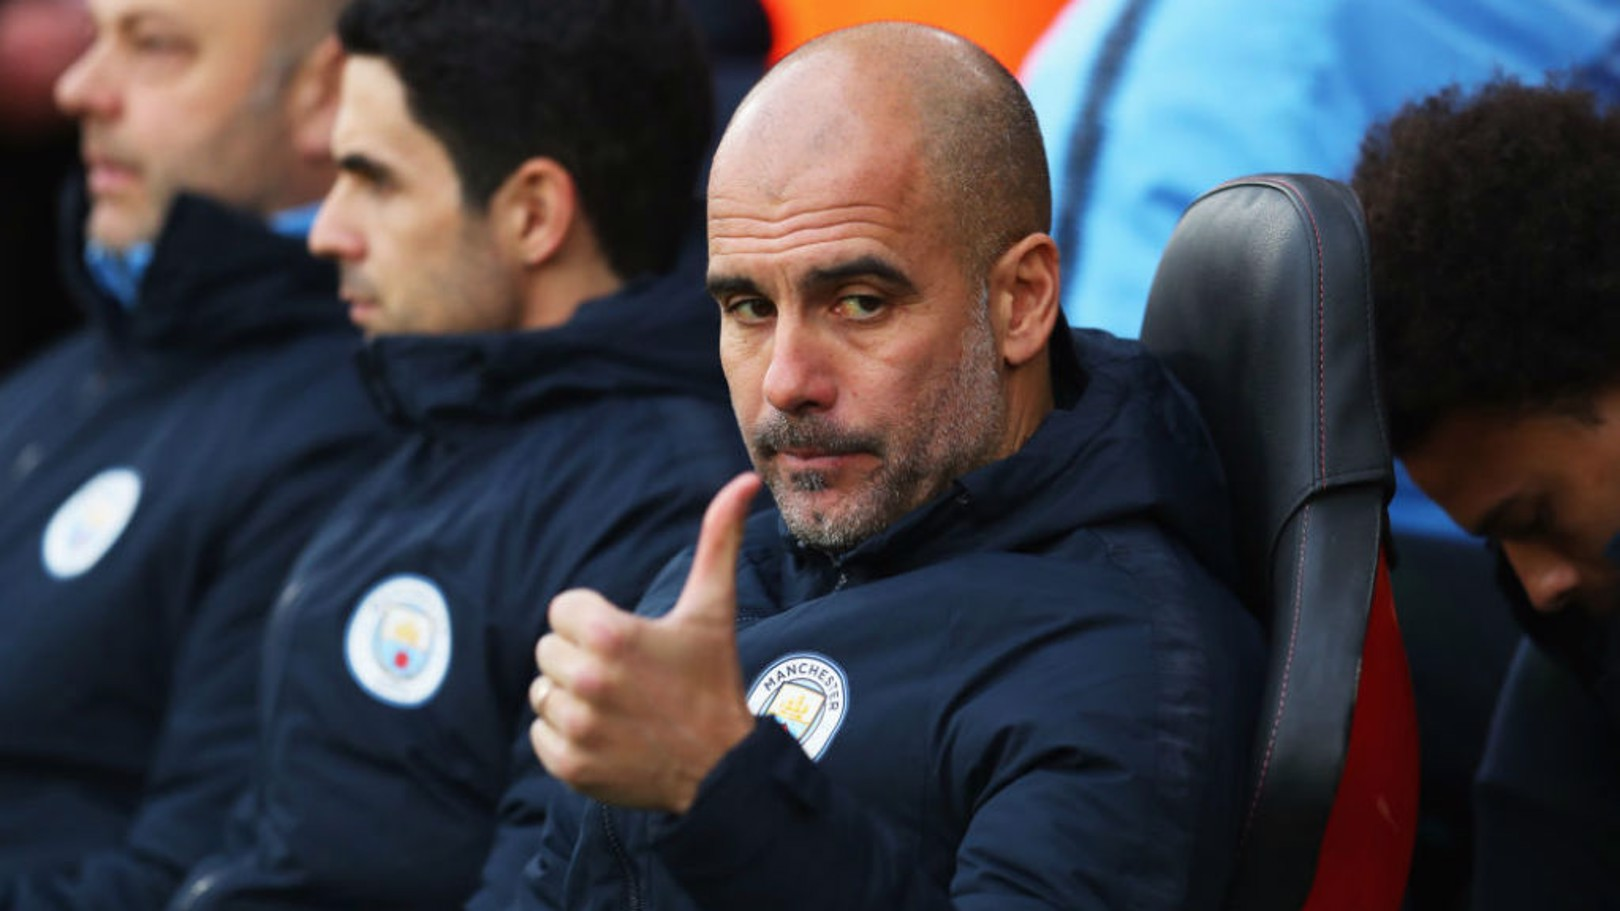 THUMBS UP: The boss is in positive mood on the touchlines